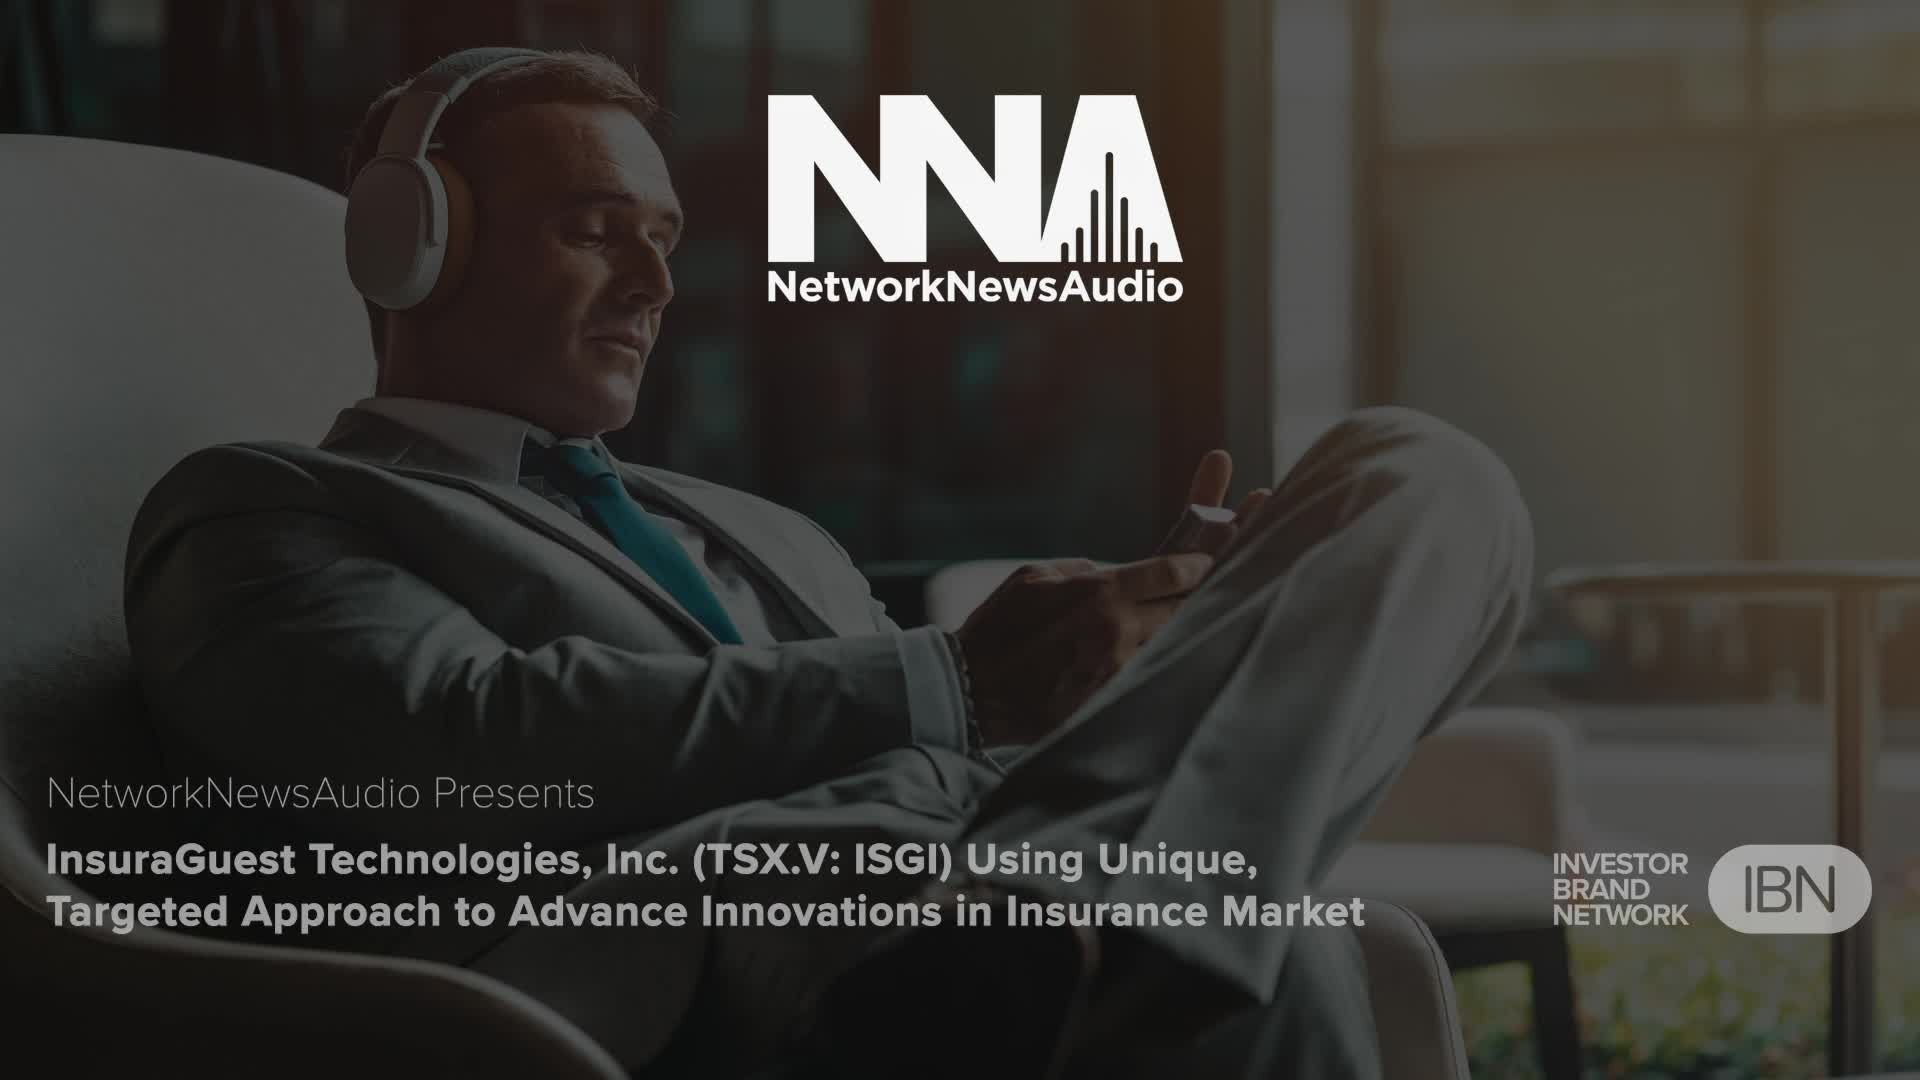 InsuraGuest Technologies, Inc. (TSX.V: ISGI) Using Unique, Targeted Approach to Advance Innovations in Insurance Market